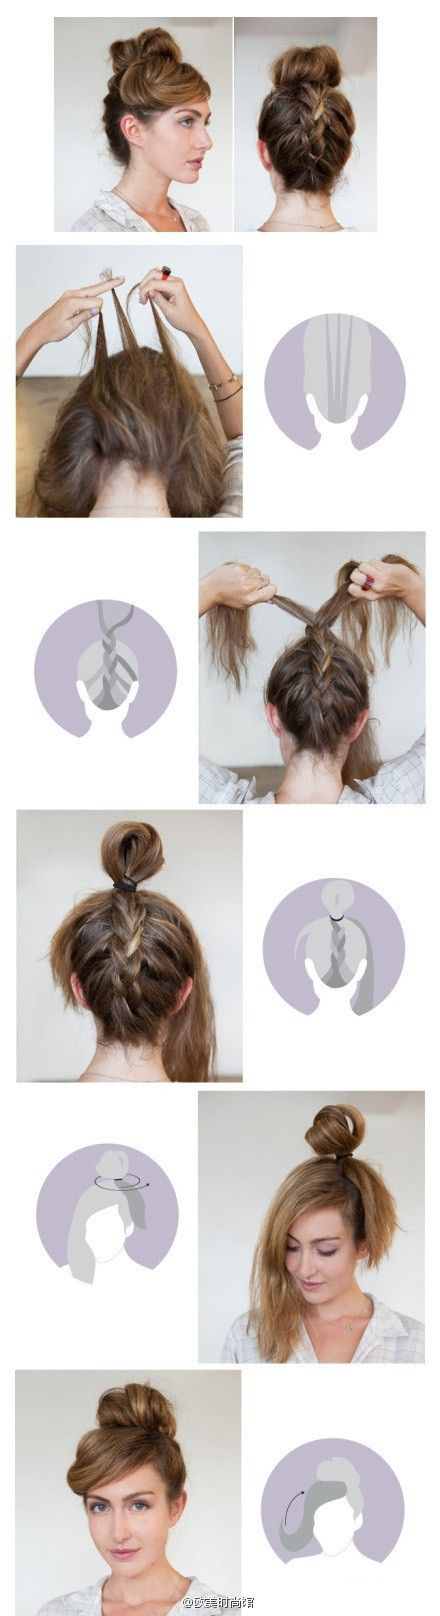 How to do a reverse french braid/top knot